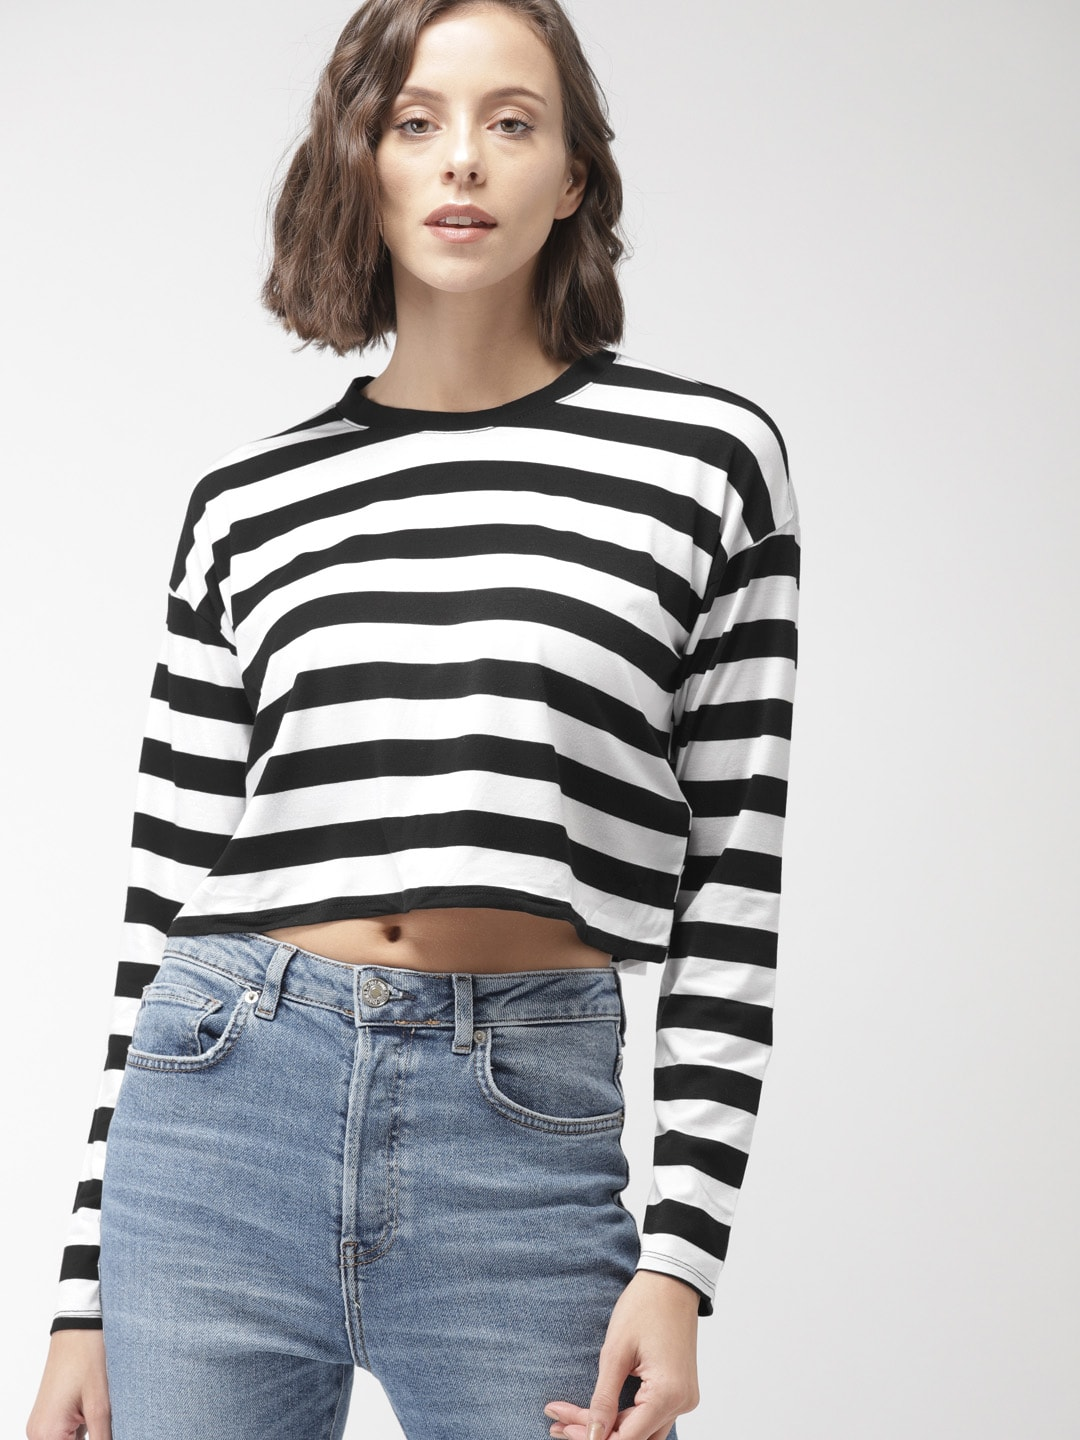 fc95e47ae2d03 Forever 21 Crop Tops - Buy Forever 21 Crop Tops online in India